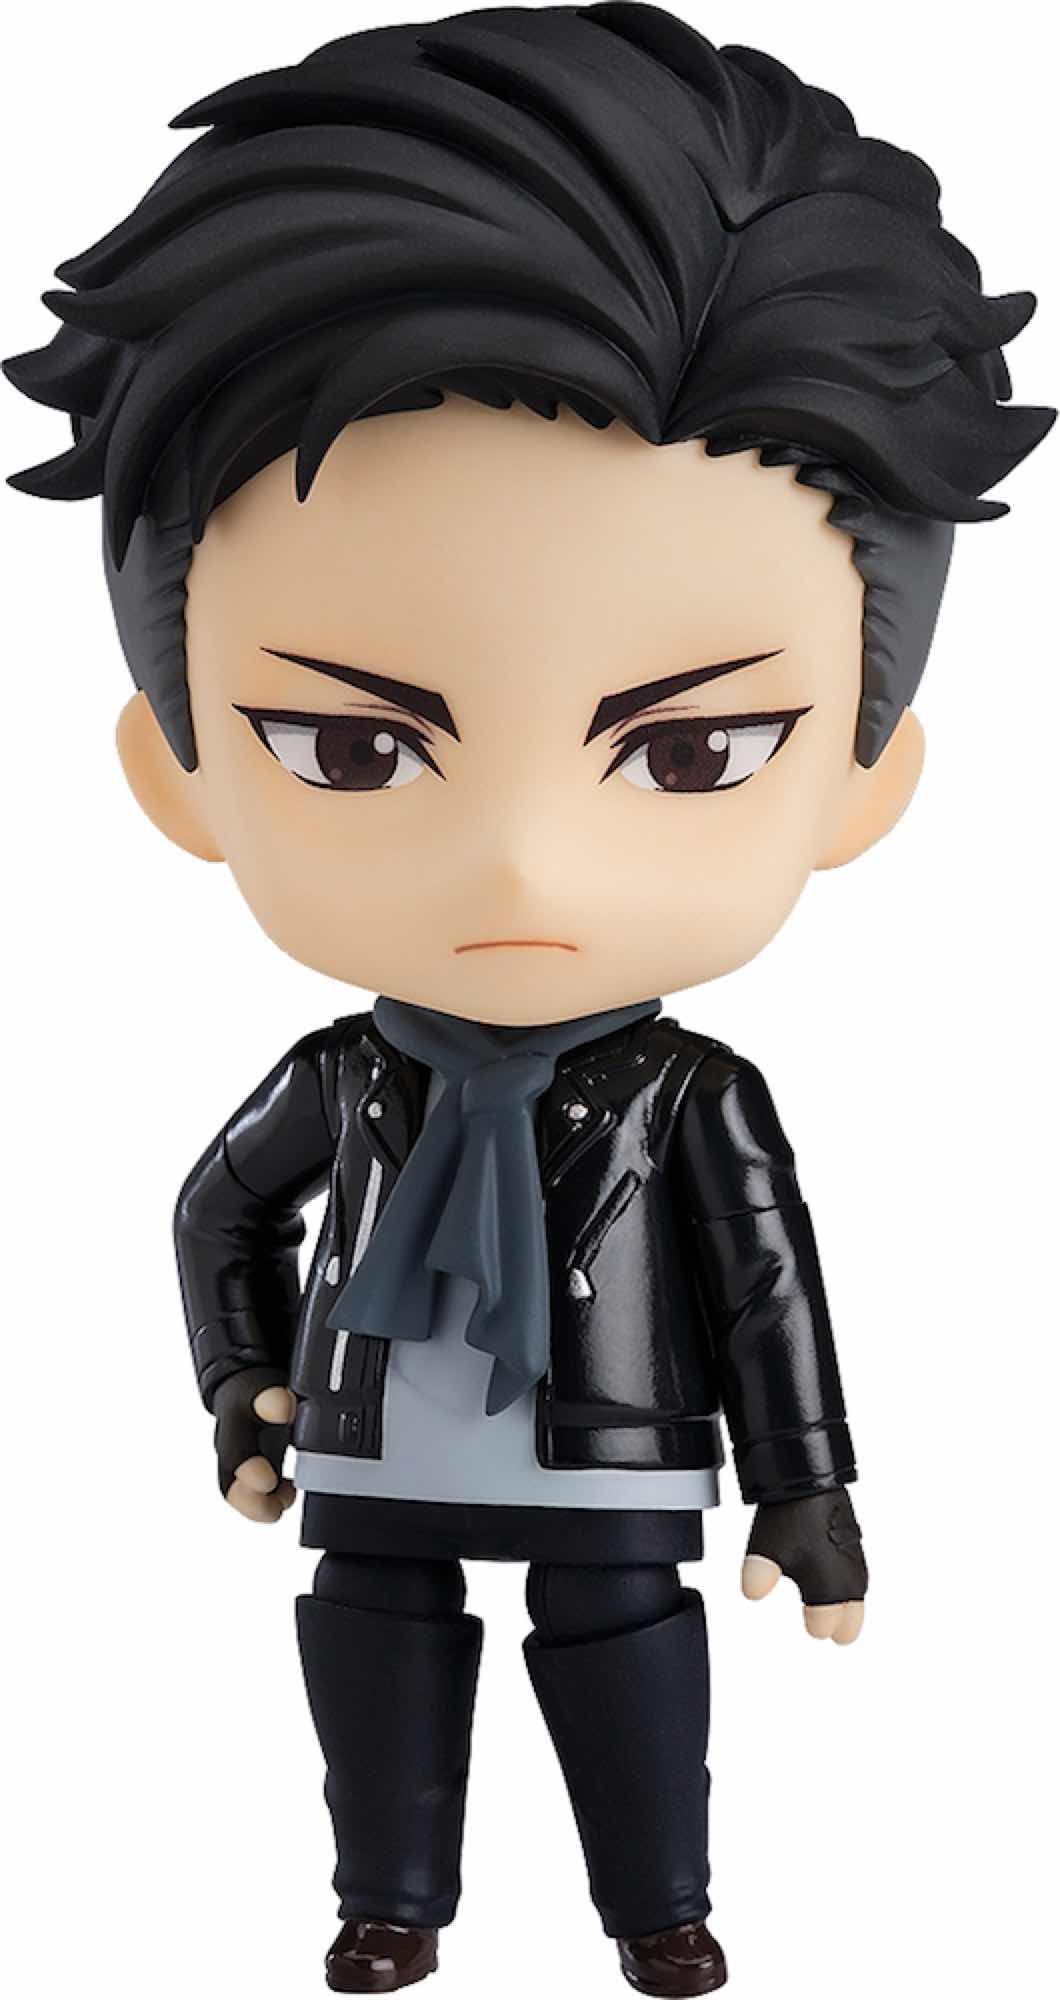 OTABEK ALTIN FIGURA 10 CM YURI!!! ON ICE NENDOROID